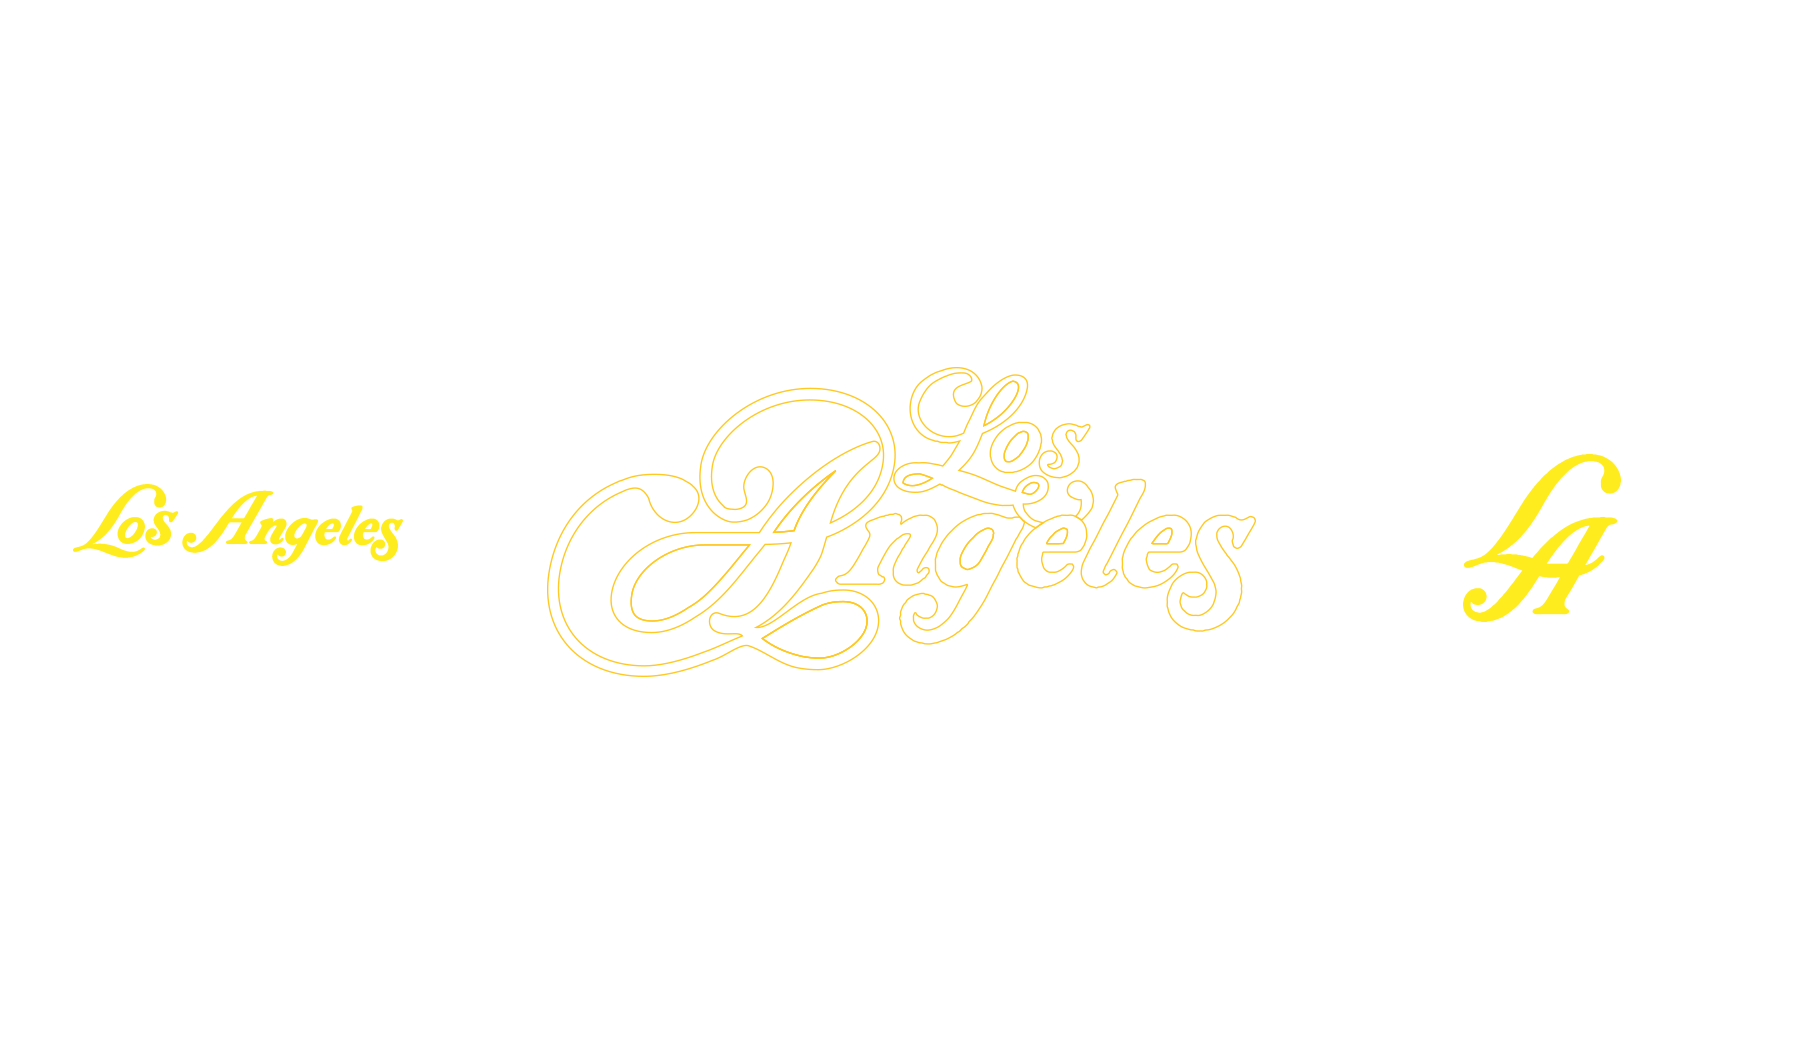 la-los-angeles-logo-design-by-ethan-solouki-graphic